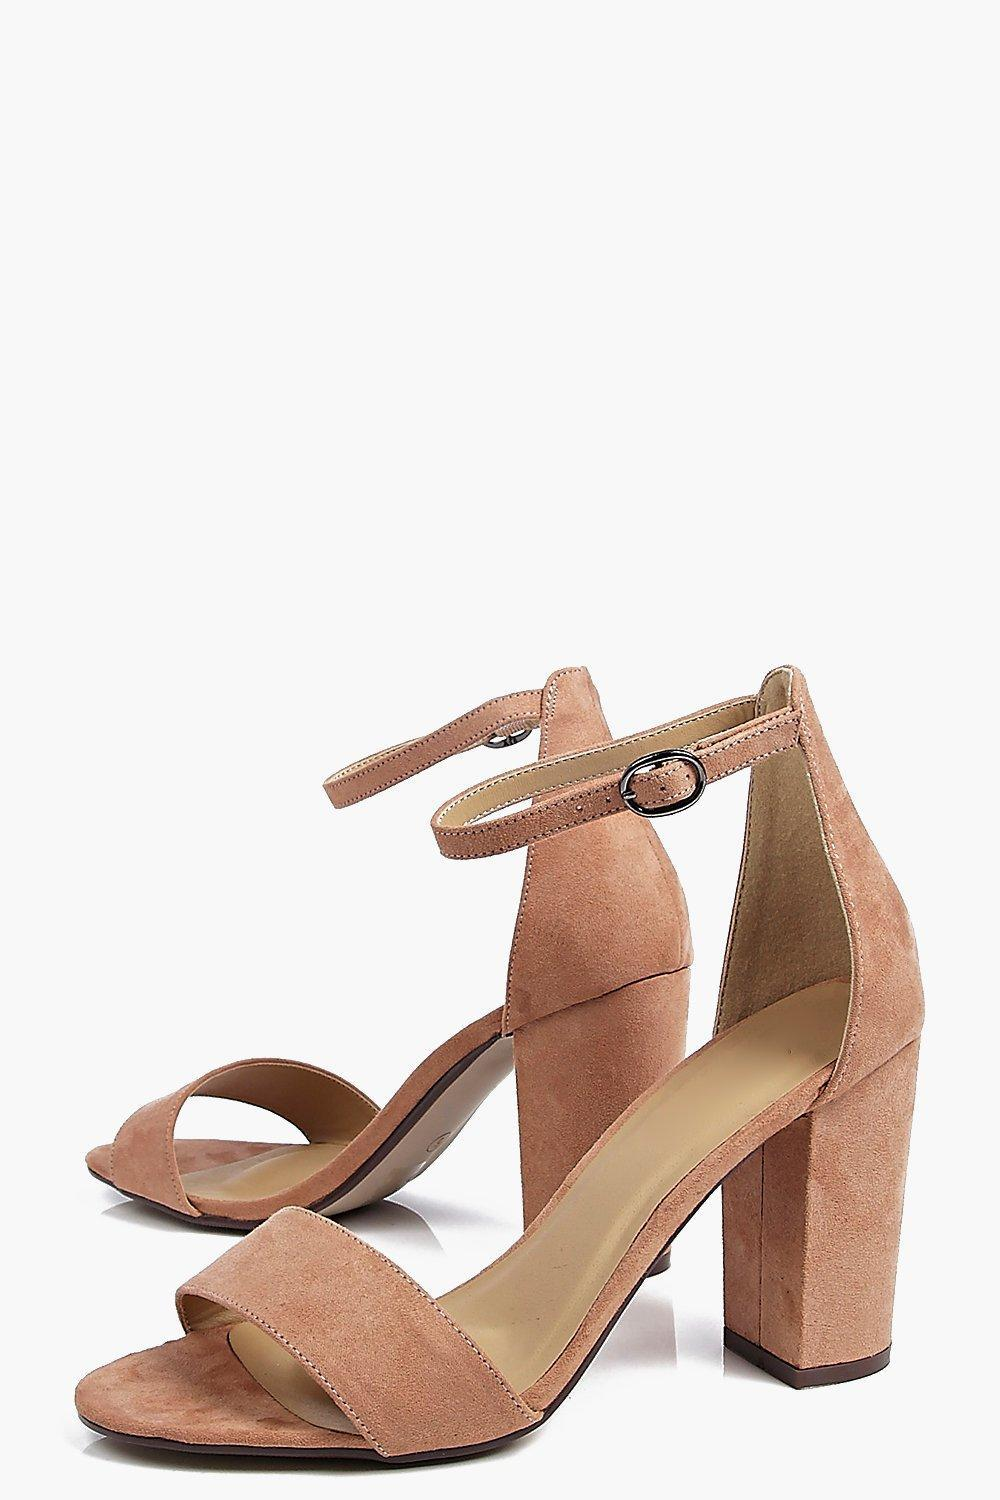 6380914f917e Boohoo - Multicolor Two Part Block Heels - Lyst. View fullscreen